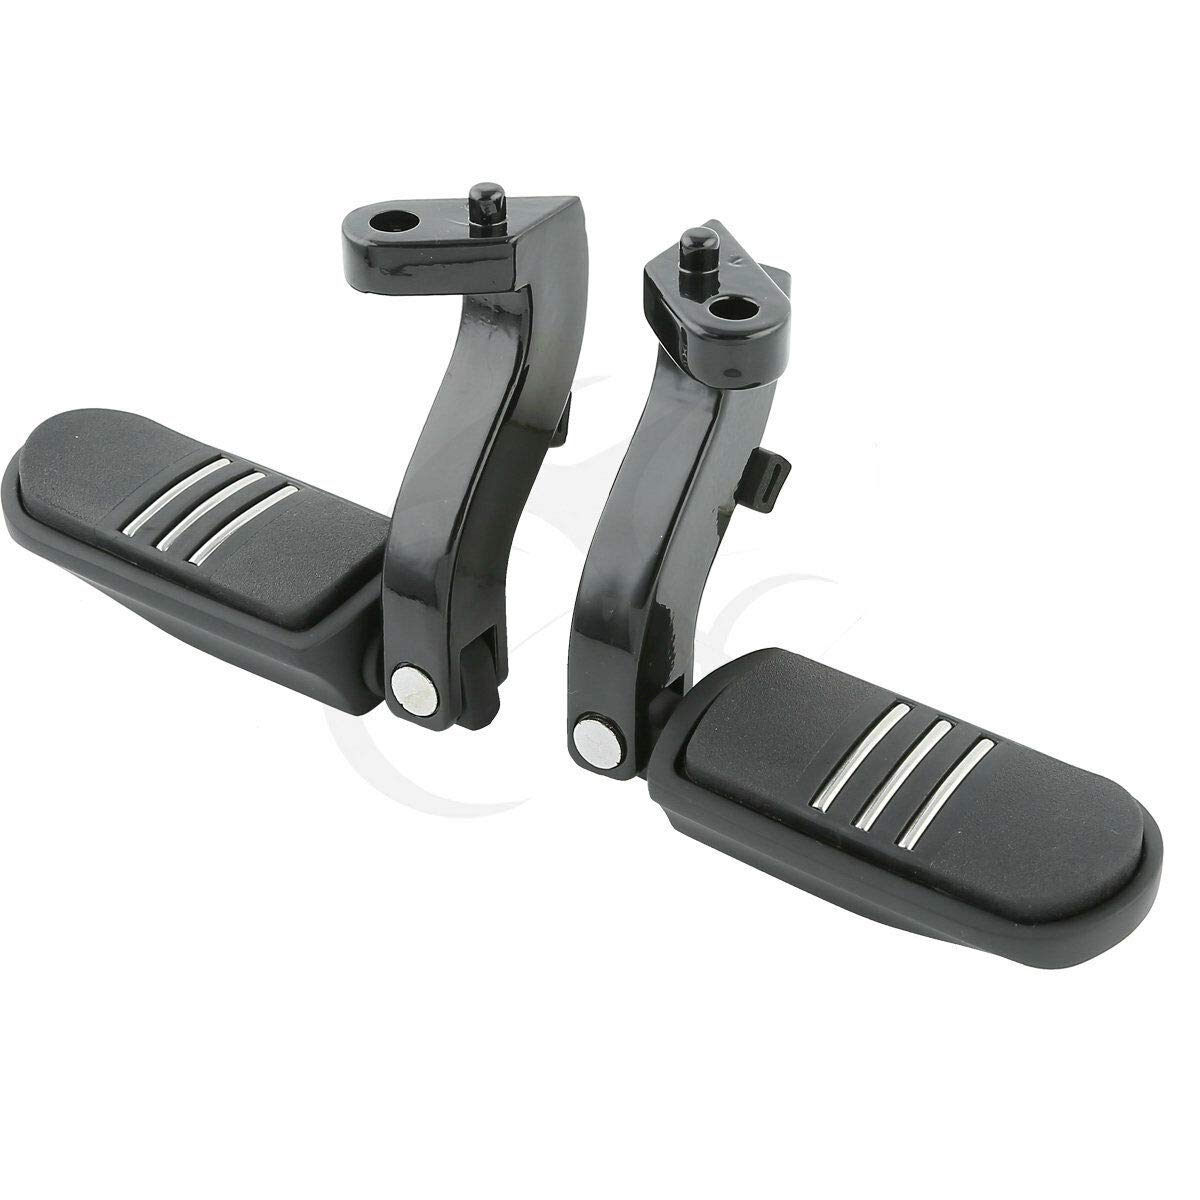 XFMT Foot Pegs Pedals W/Brackets Compatible with Harley Davidson Touring FLHT FLHR FLTR FLHX 1993-2020 (Replaces HD# 50198-97B) by XFMT